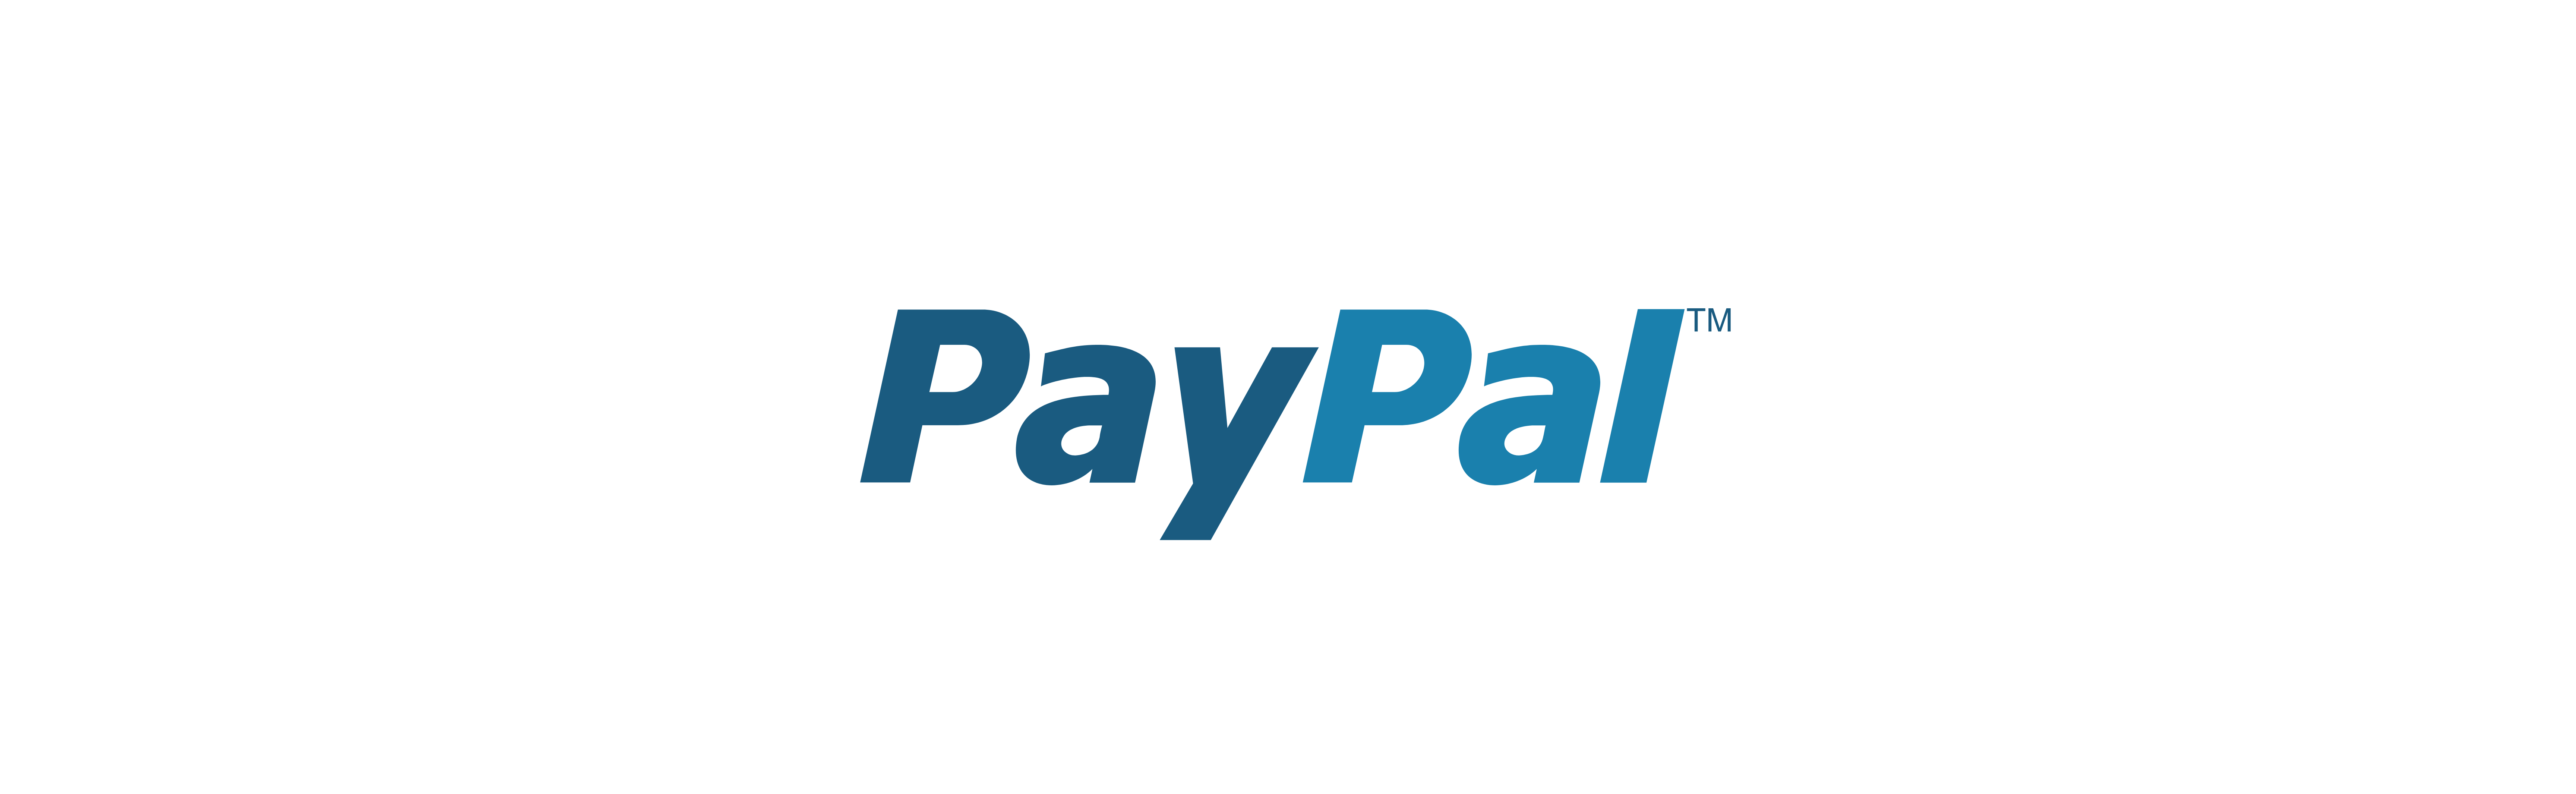 automated payment system - paypal